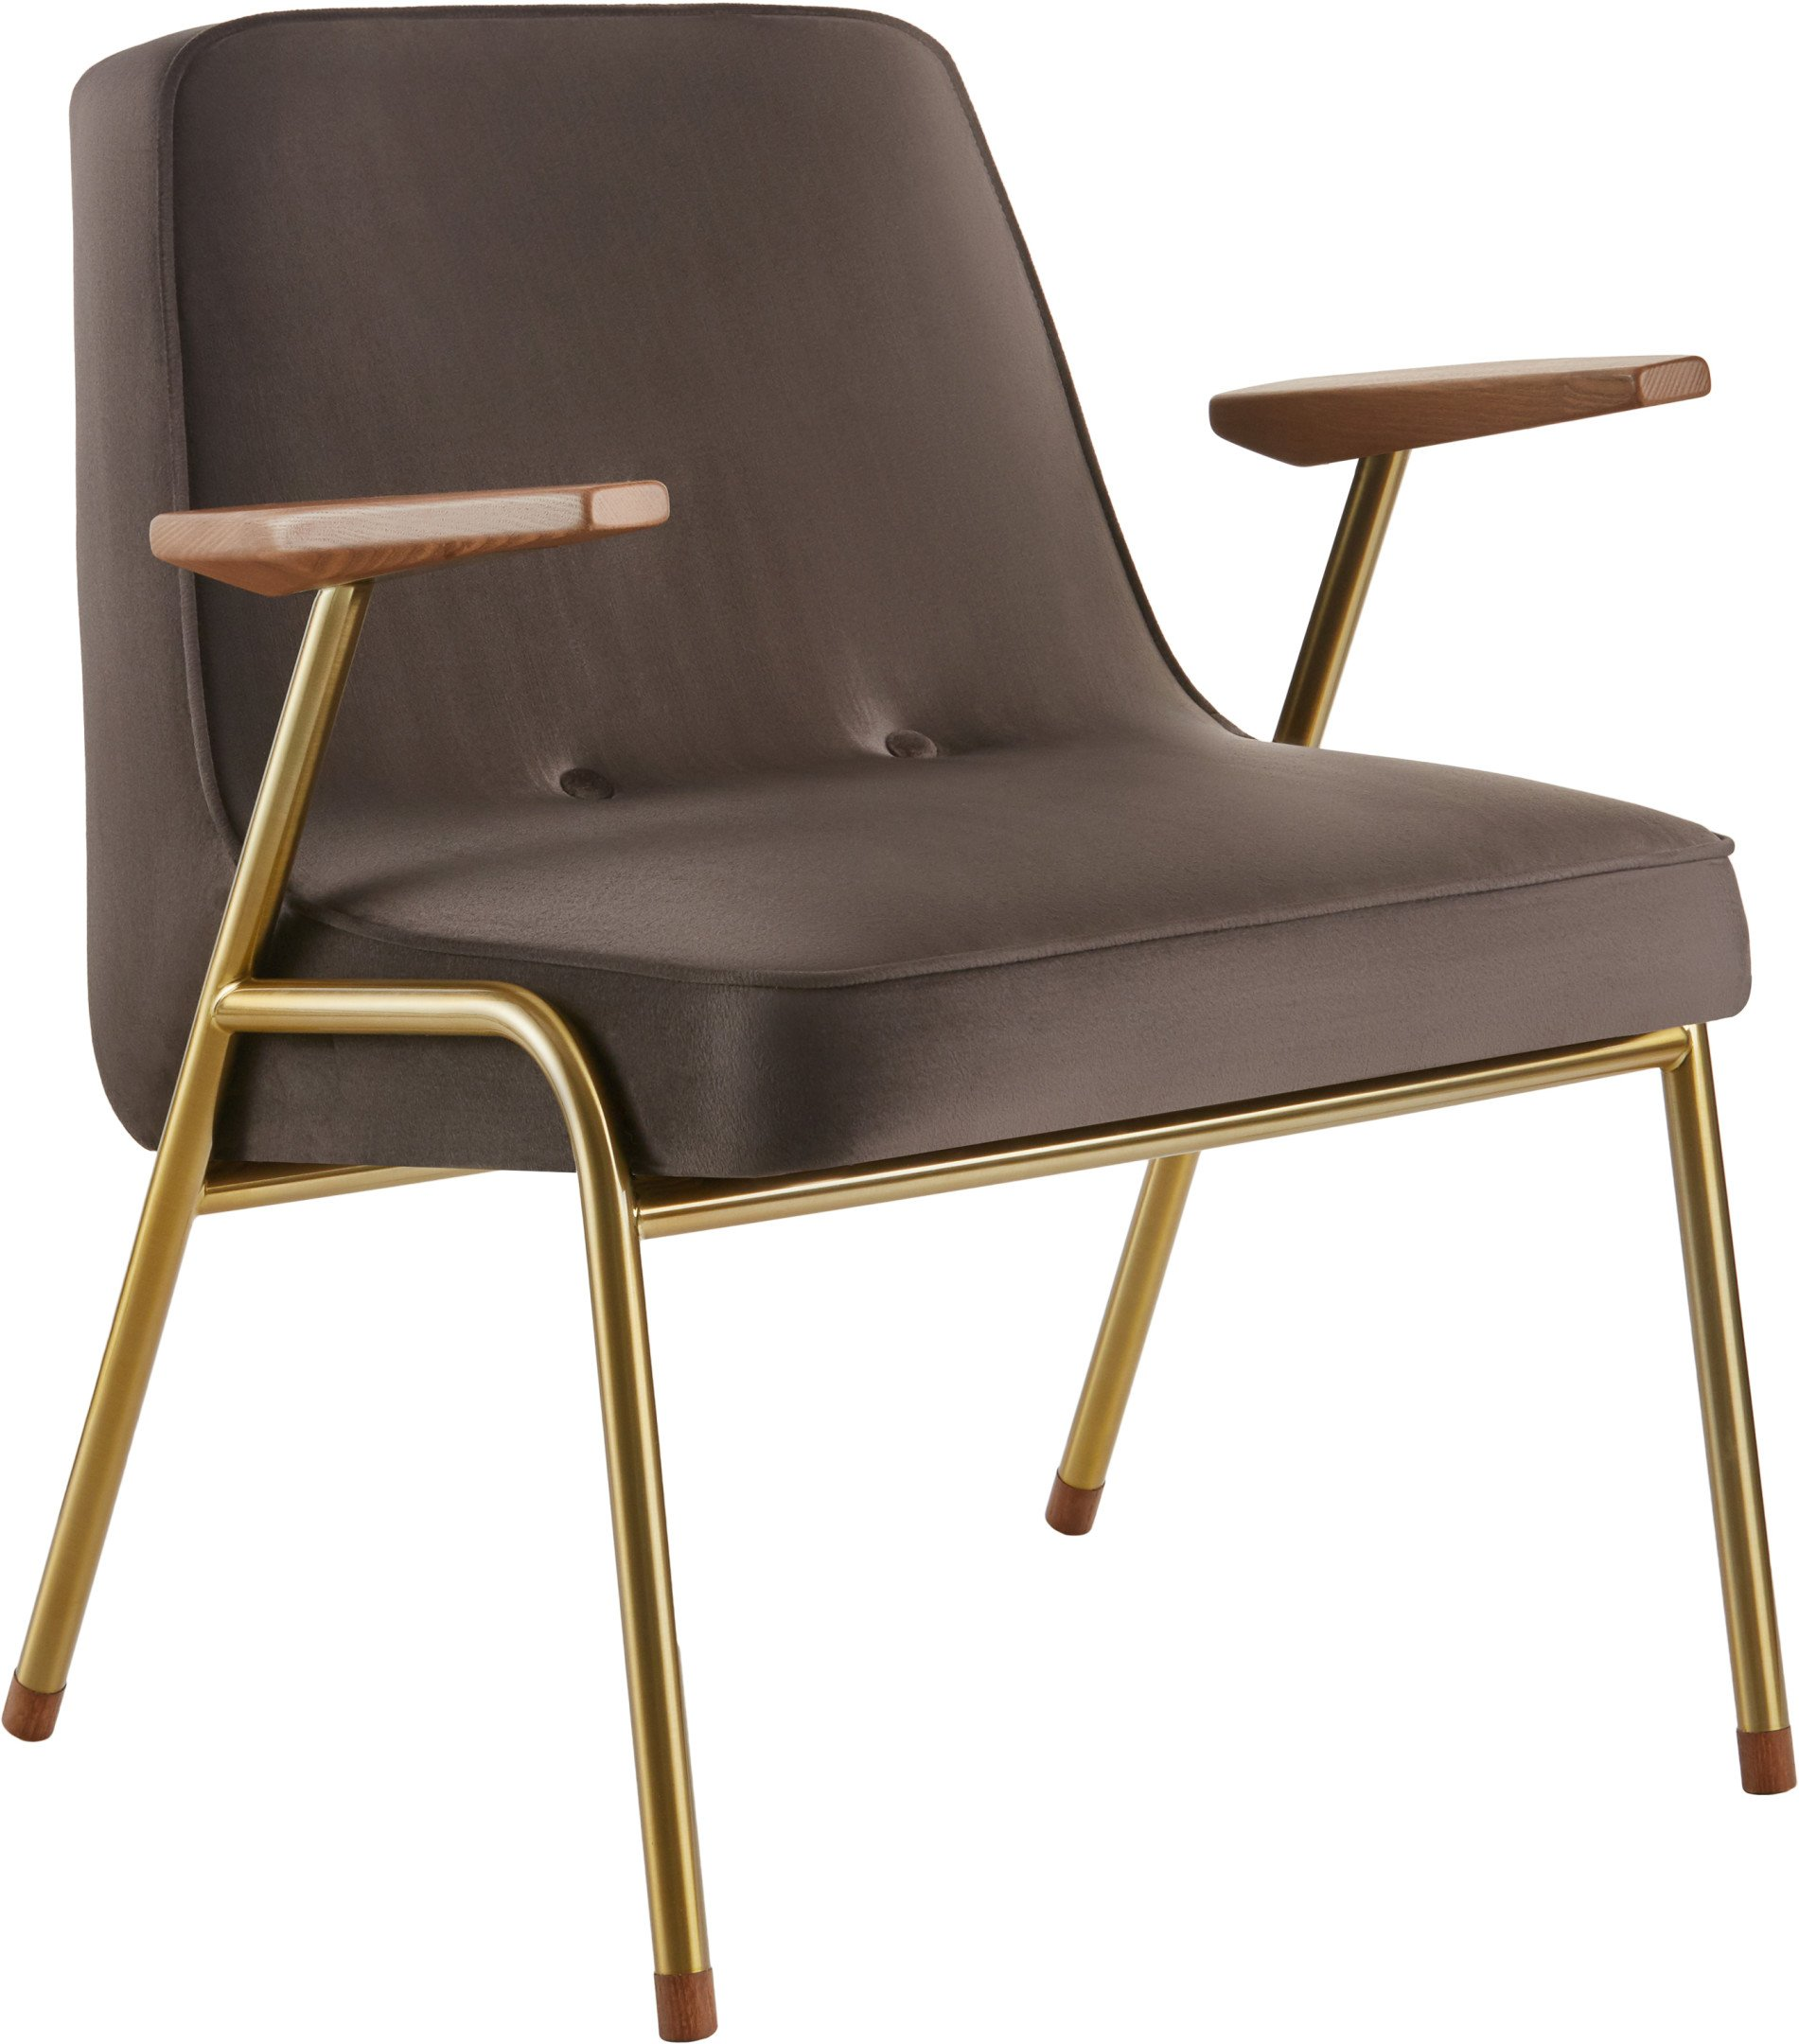 366 Armchair Metal Shine Velvet Taupe (gold) by Józef Chierowski